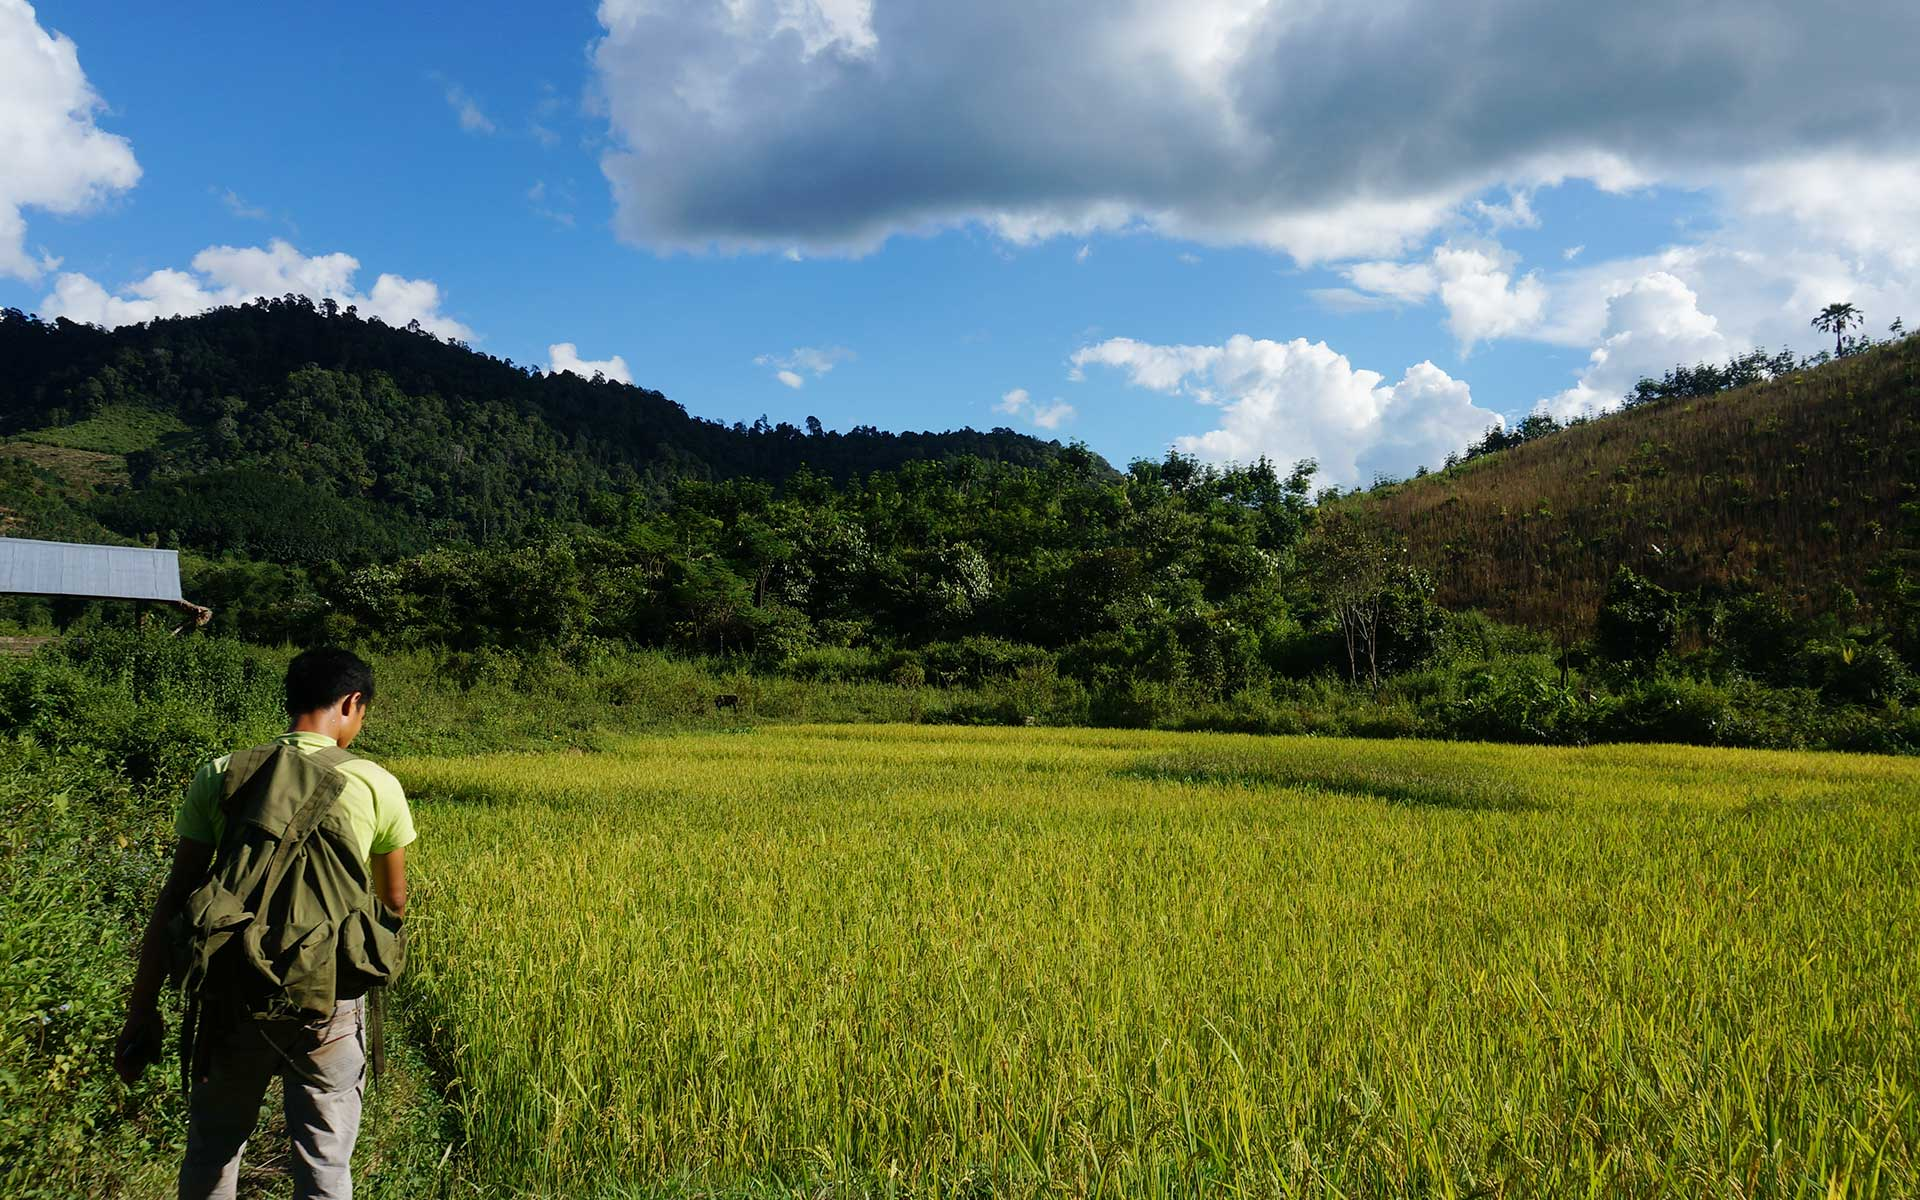 trekking rice field in luang namtha laos